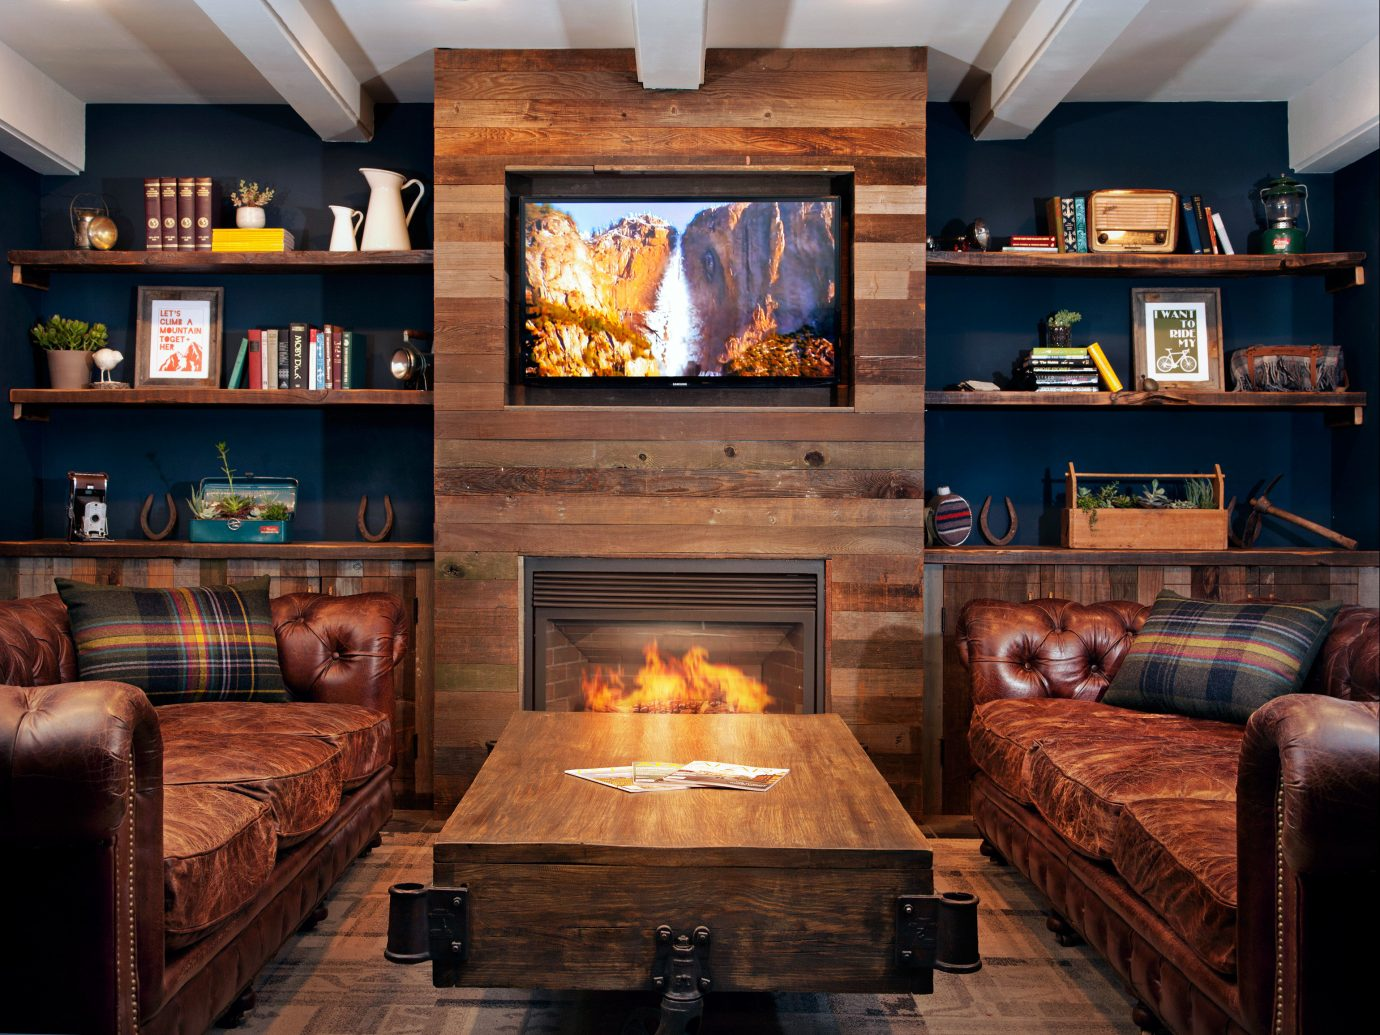 Beach Eco Entertainment Fireplace Glamping Lounge Mountains + Skiing Rustic Trip Ideas indoor Living sofa living room room property hearth home interior design hardwood estate wood recreation room lighting cottage screenshot Design mansion furniture